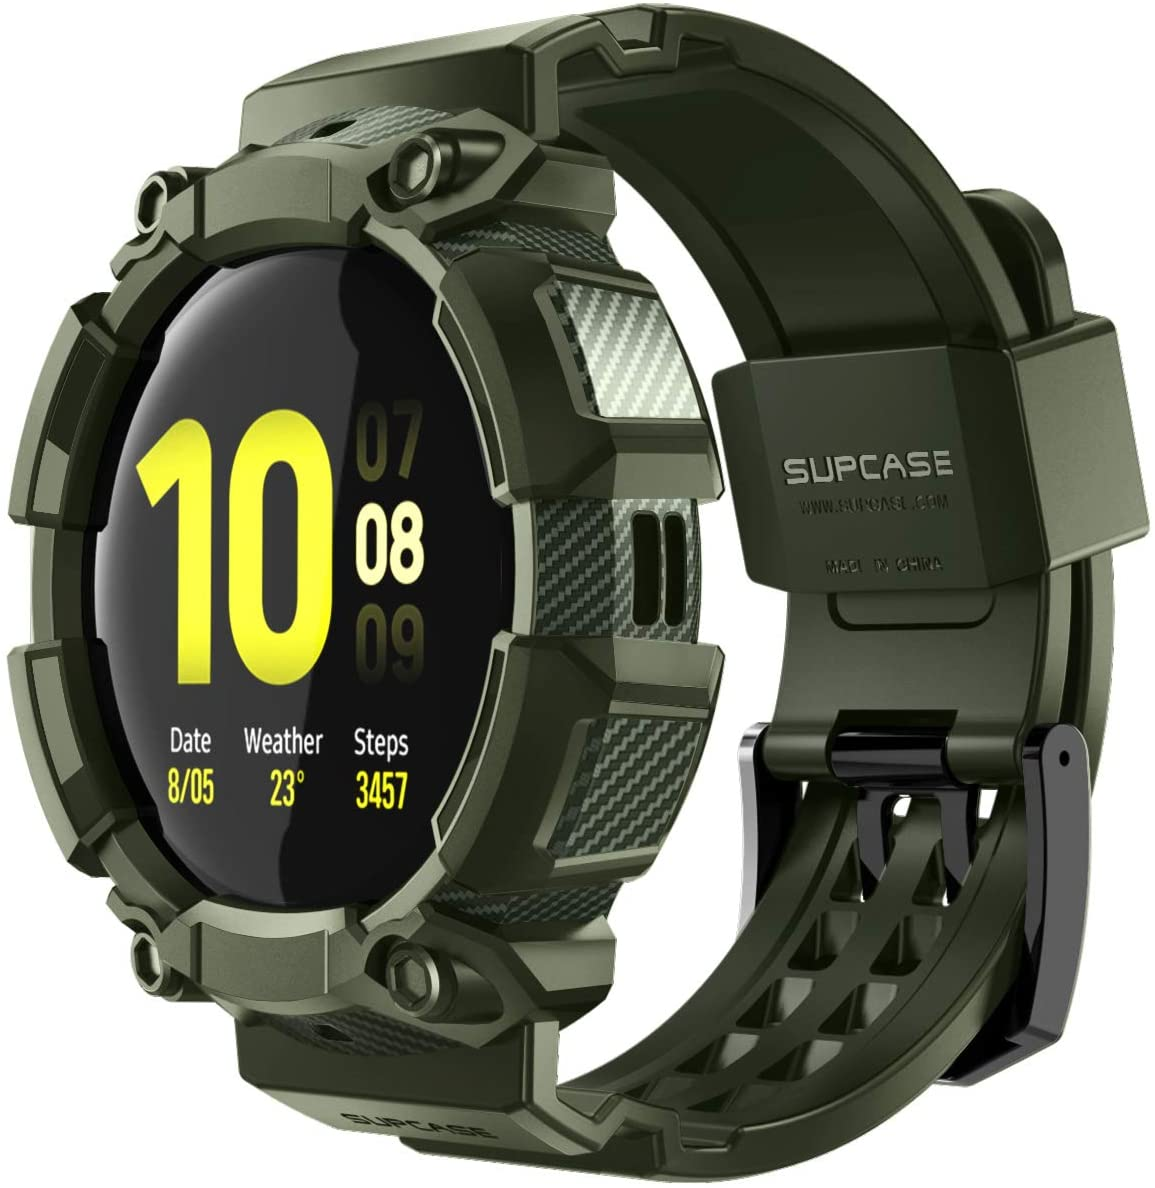 SUPCASE [Unicorn Beetle Pro] Series Case for Galaxy Watch Active 2, Rugged Protective Case with Strap Bands for Galaxy Watch Active 2 [44mm] 2019 Release (Green)